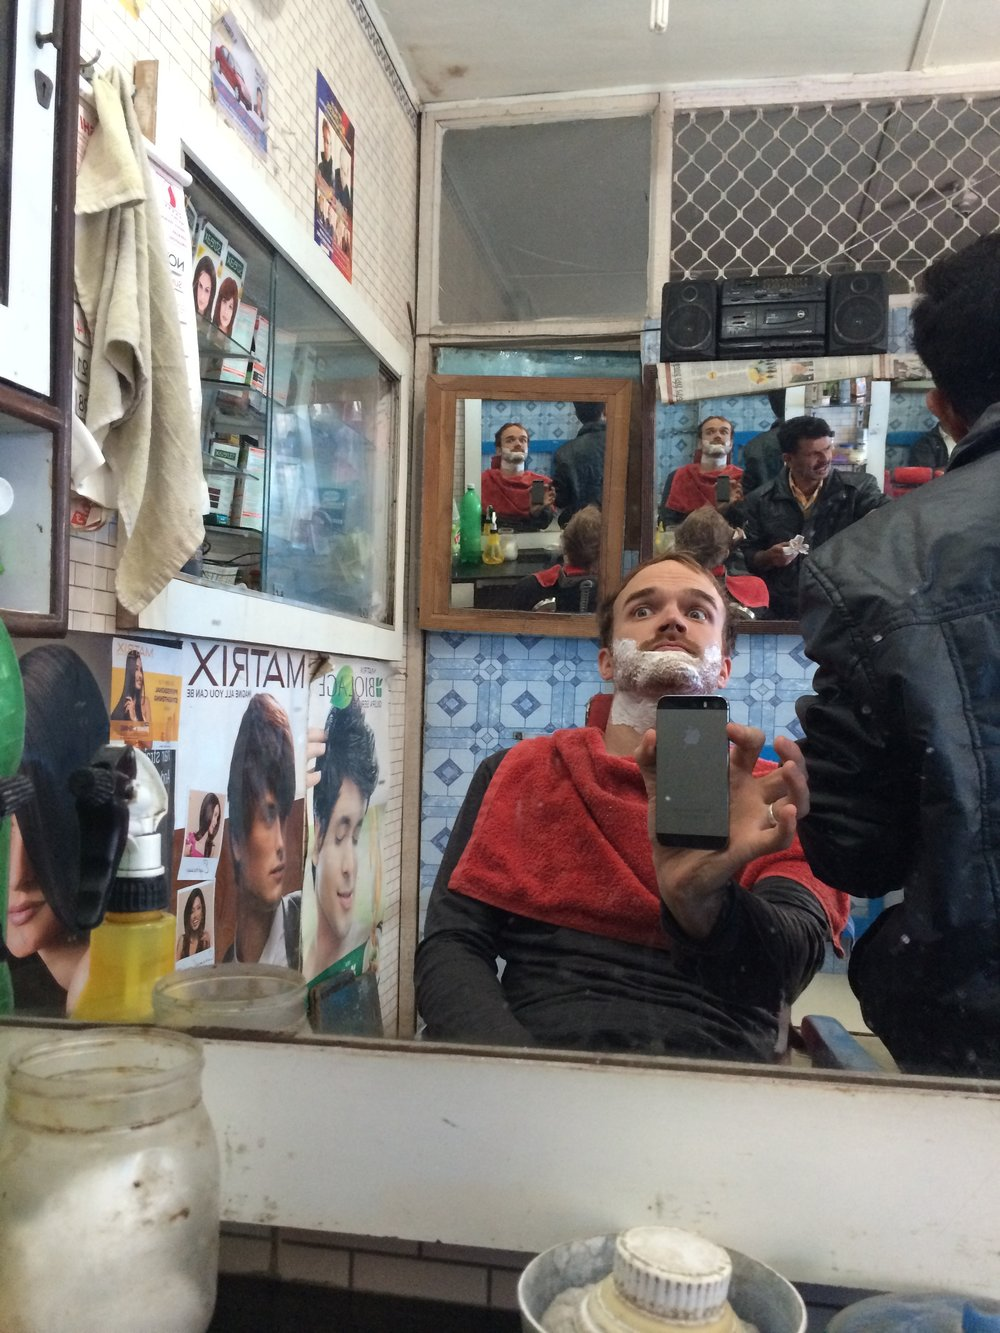 Slightly spooked while getting a shave with the locals in northern India. Shot on iPhone 5S.